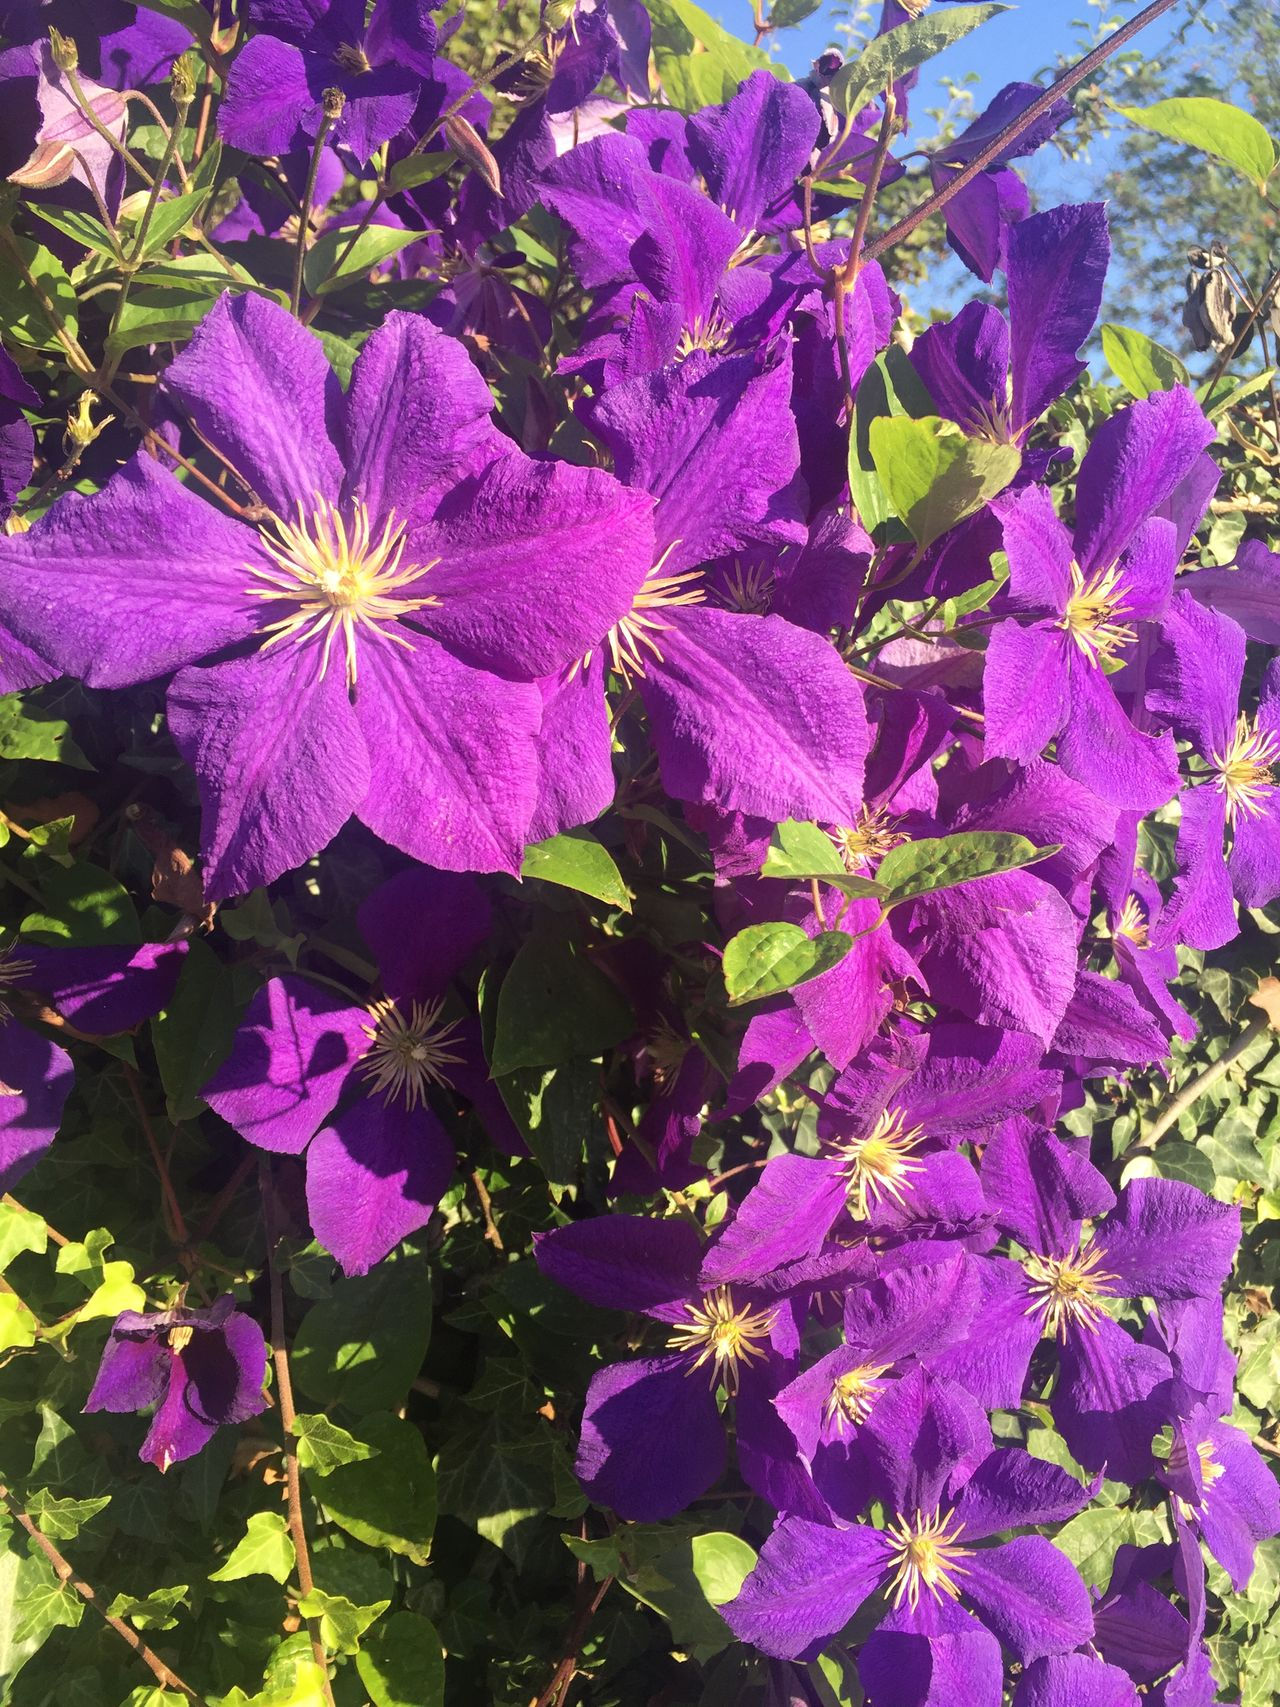 Beauty In Nature Blooming Blume Blüte Day Flower Flower Head Freshness Lila Nature No People Petunia Pflanzen Plant Purple